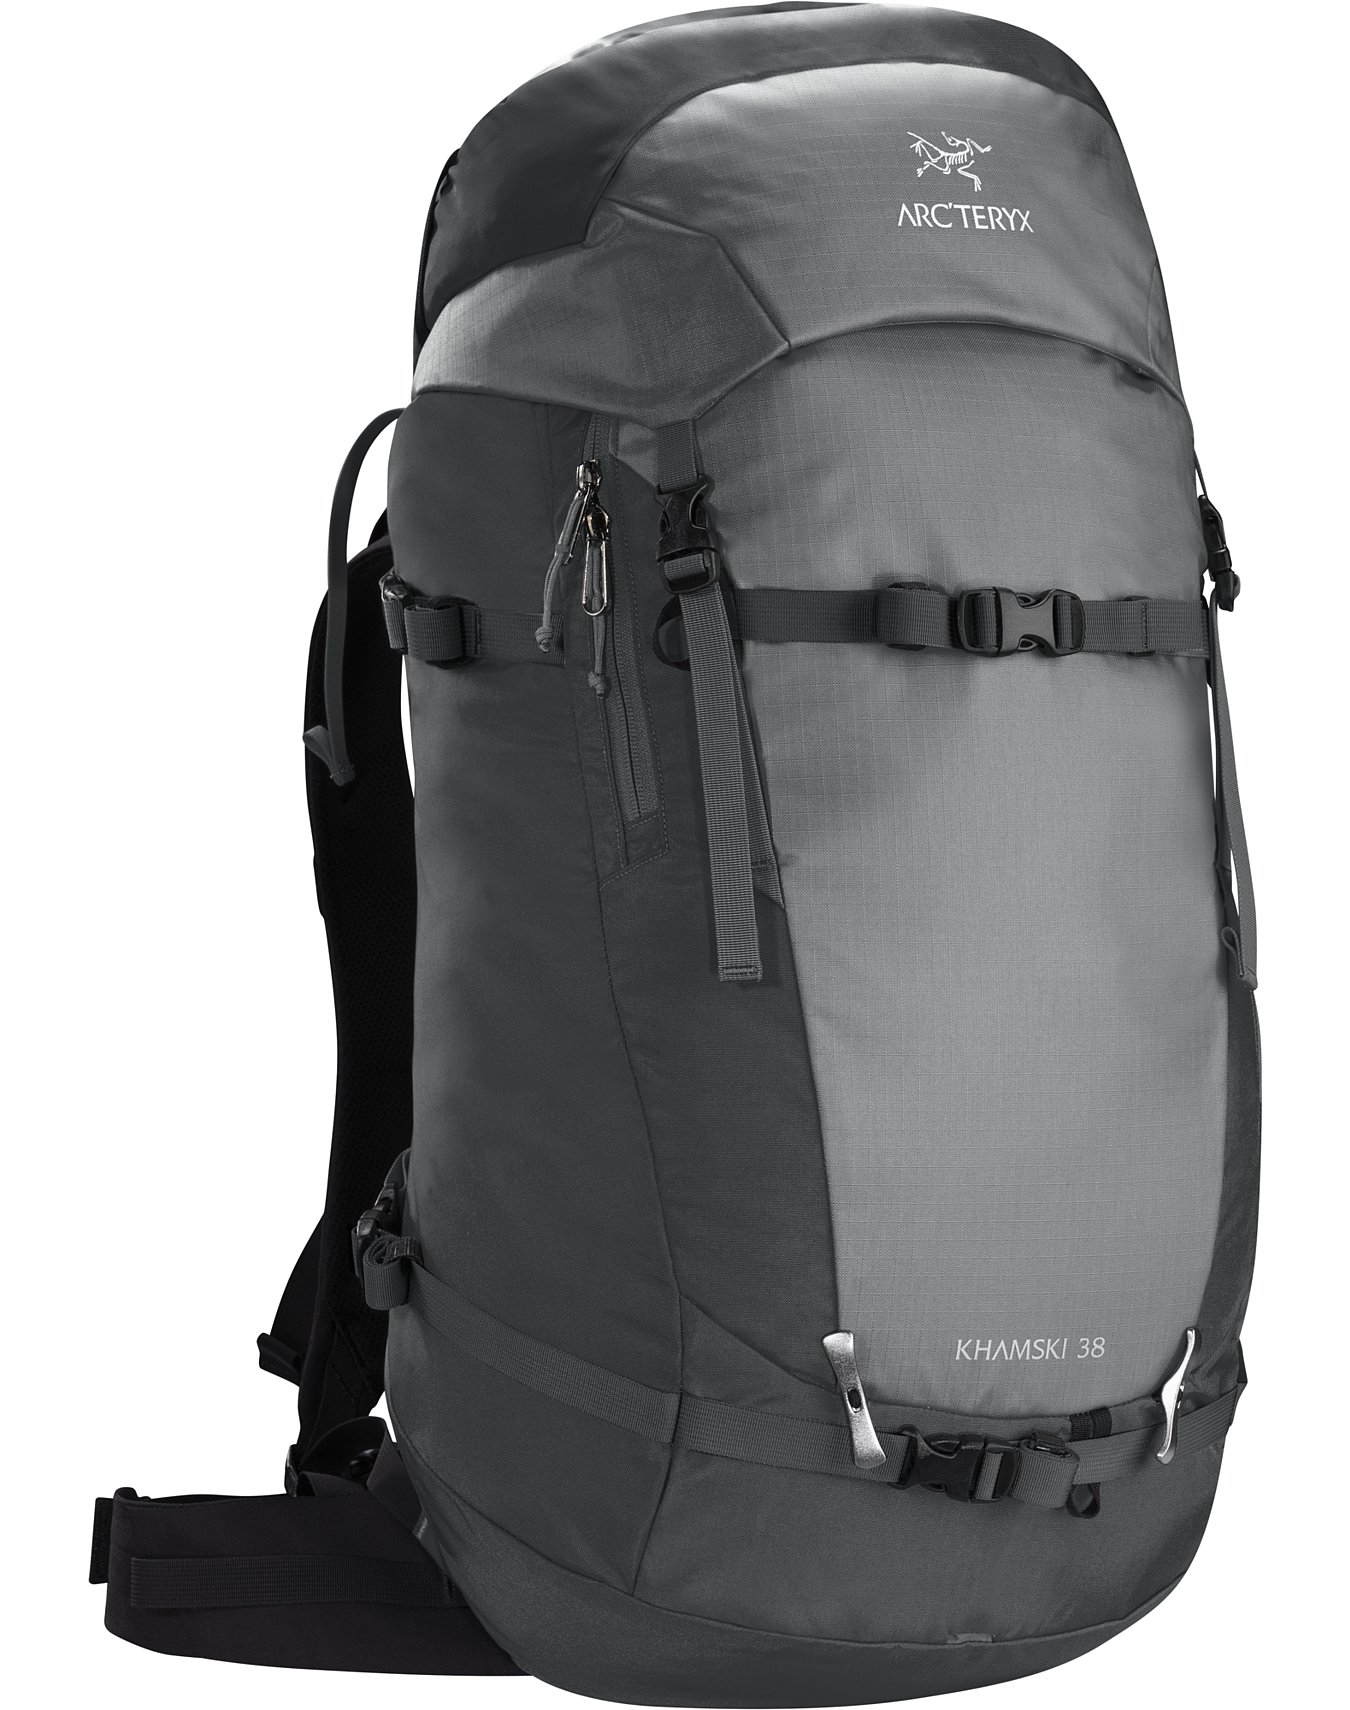 Khamski 38 Backpack